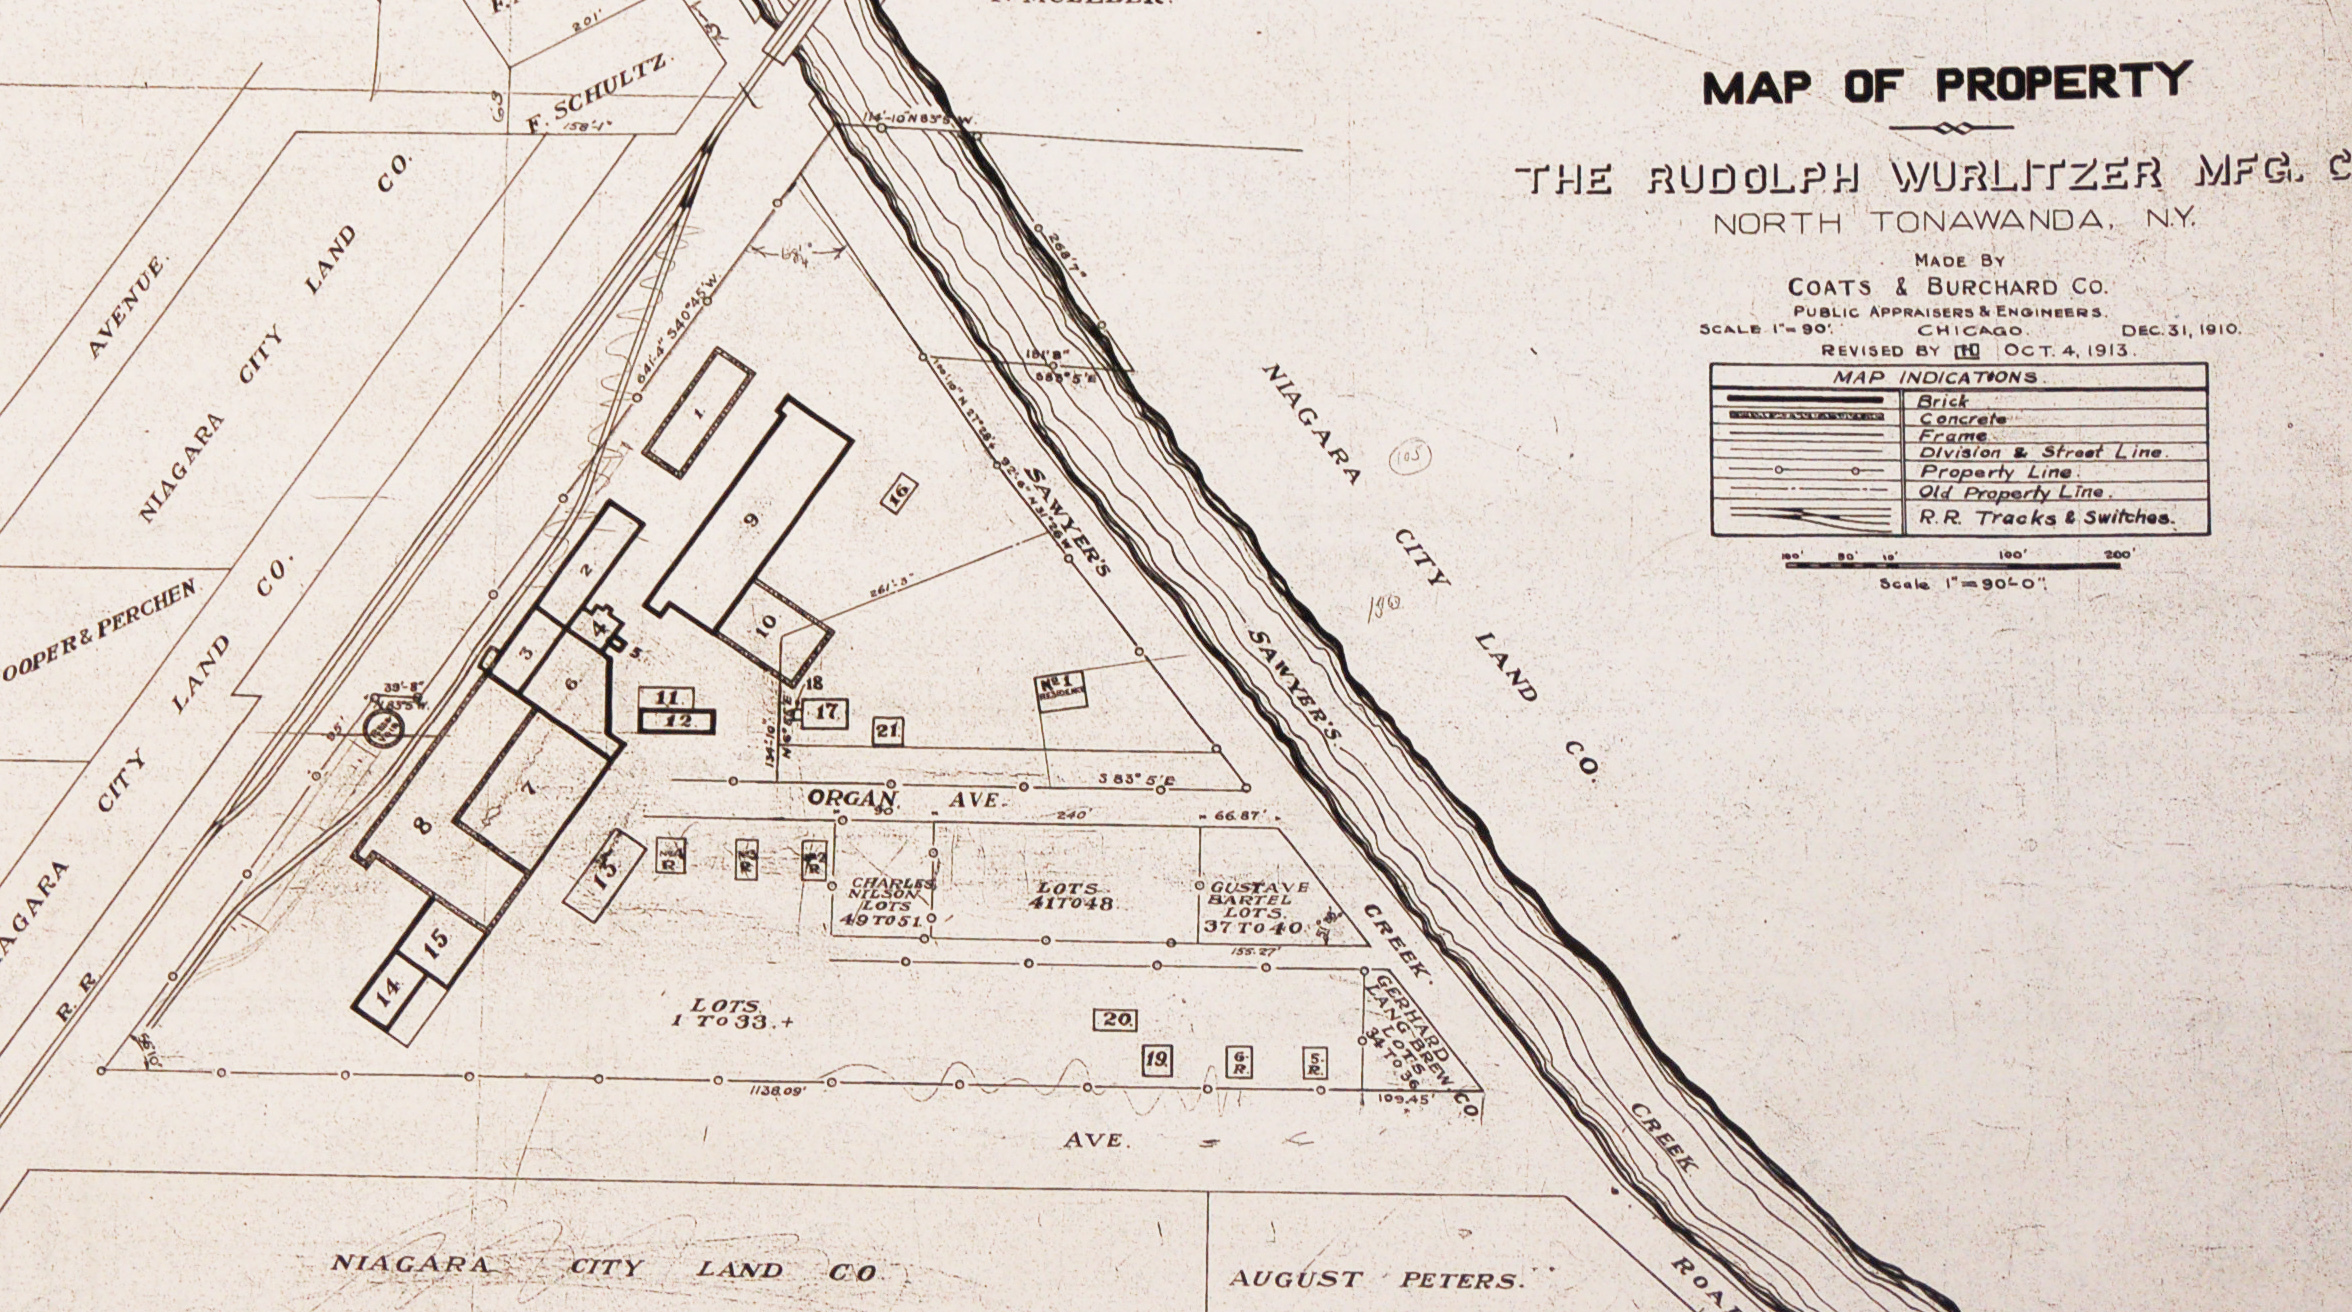 1910 Map of Wurlitzer Grounds.jpg